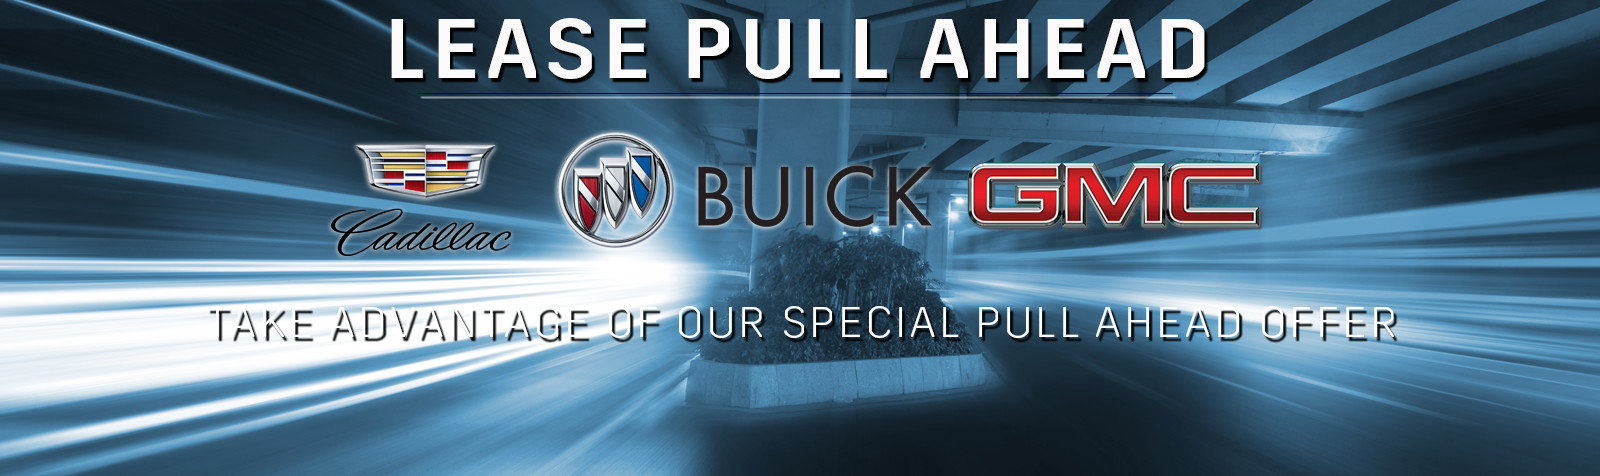 Lafontaine Cadillac Buick Gmc >> Cadillac Buick GMC Lease Pull Ahead - LaFontaine Cadillac ...